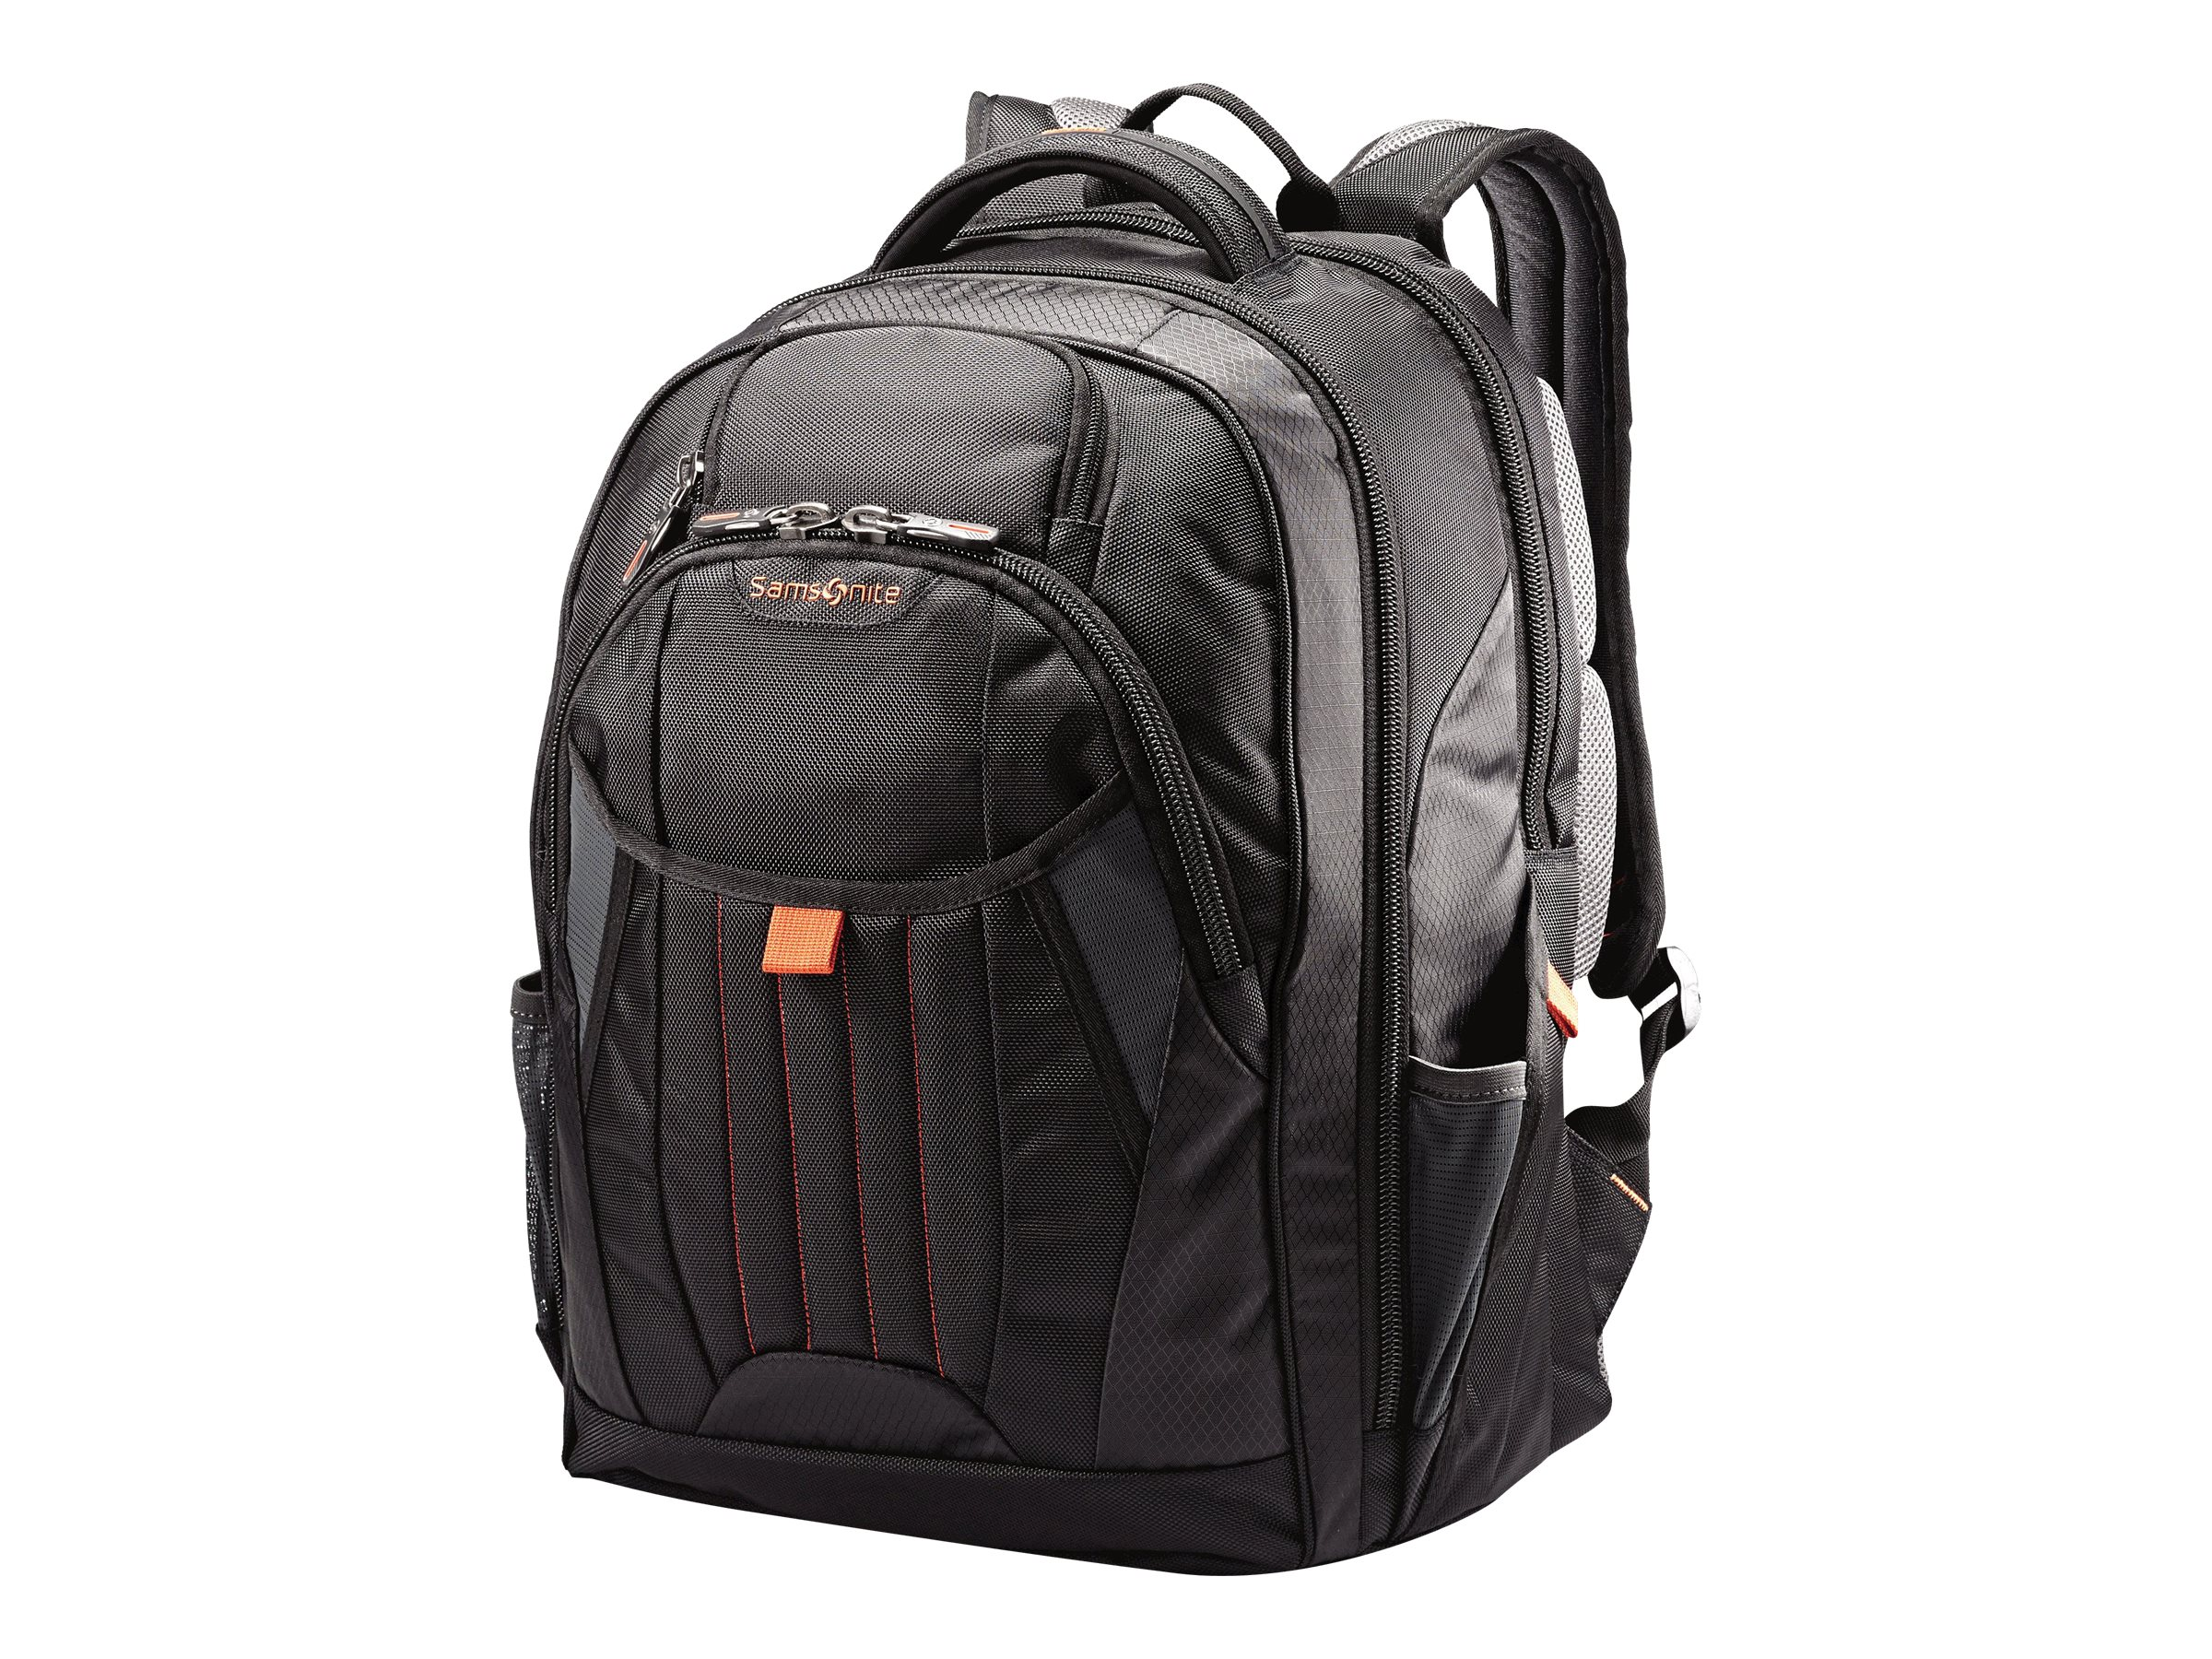 Stephen Gould Tectonic 2 Large Backpack 17, Black Orange, 66303-1070